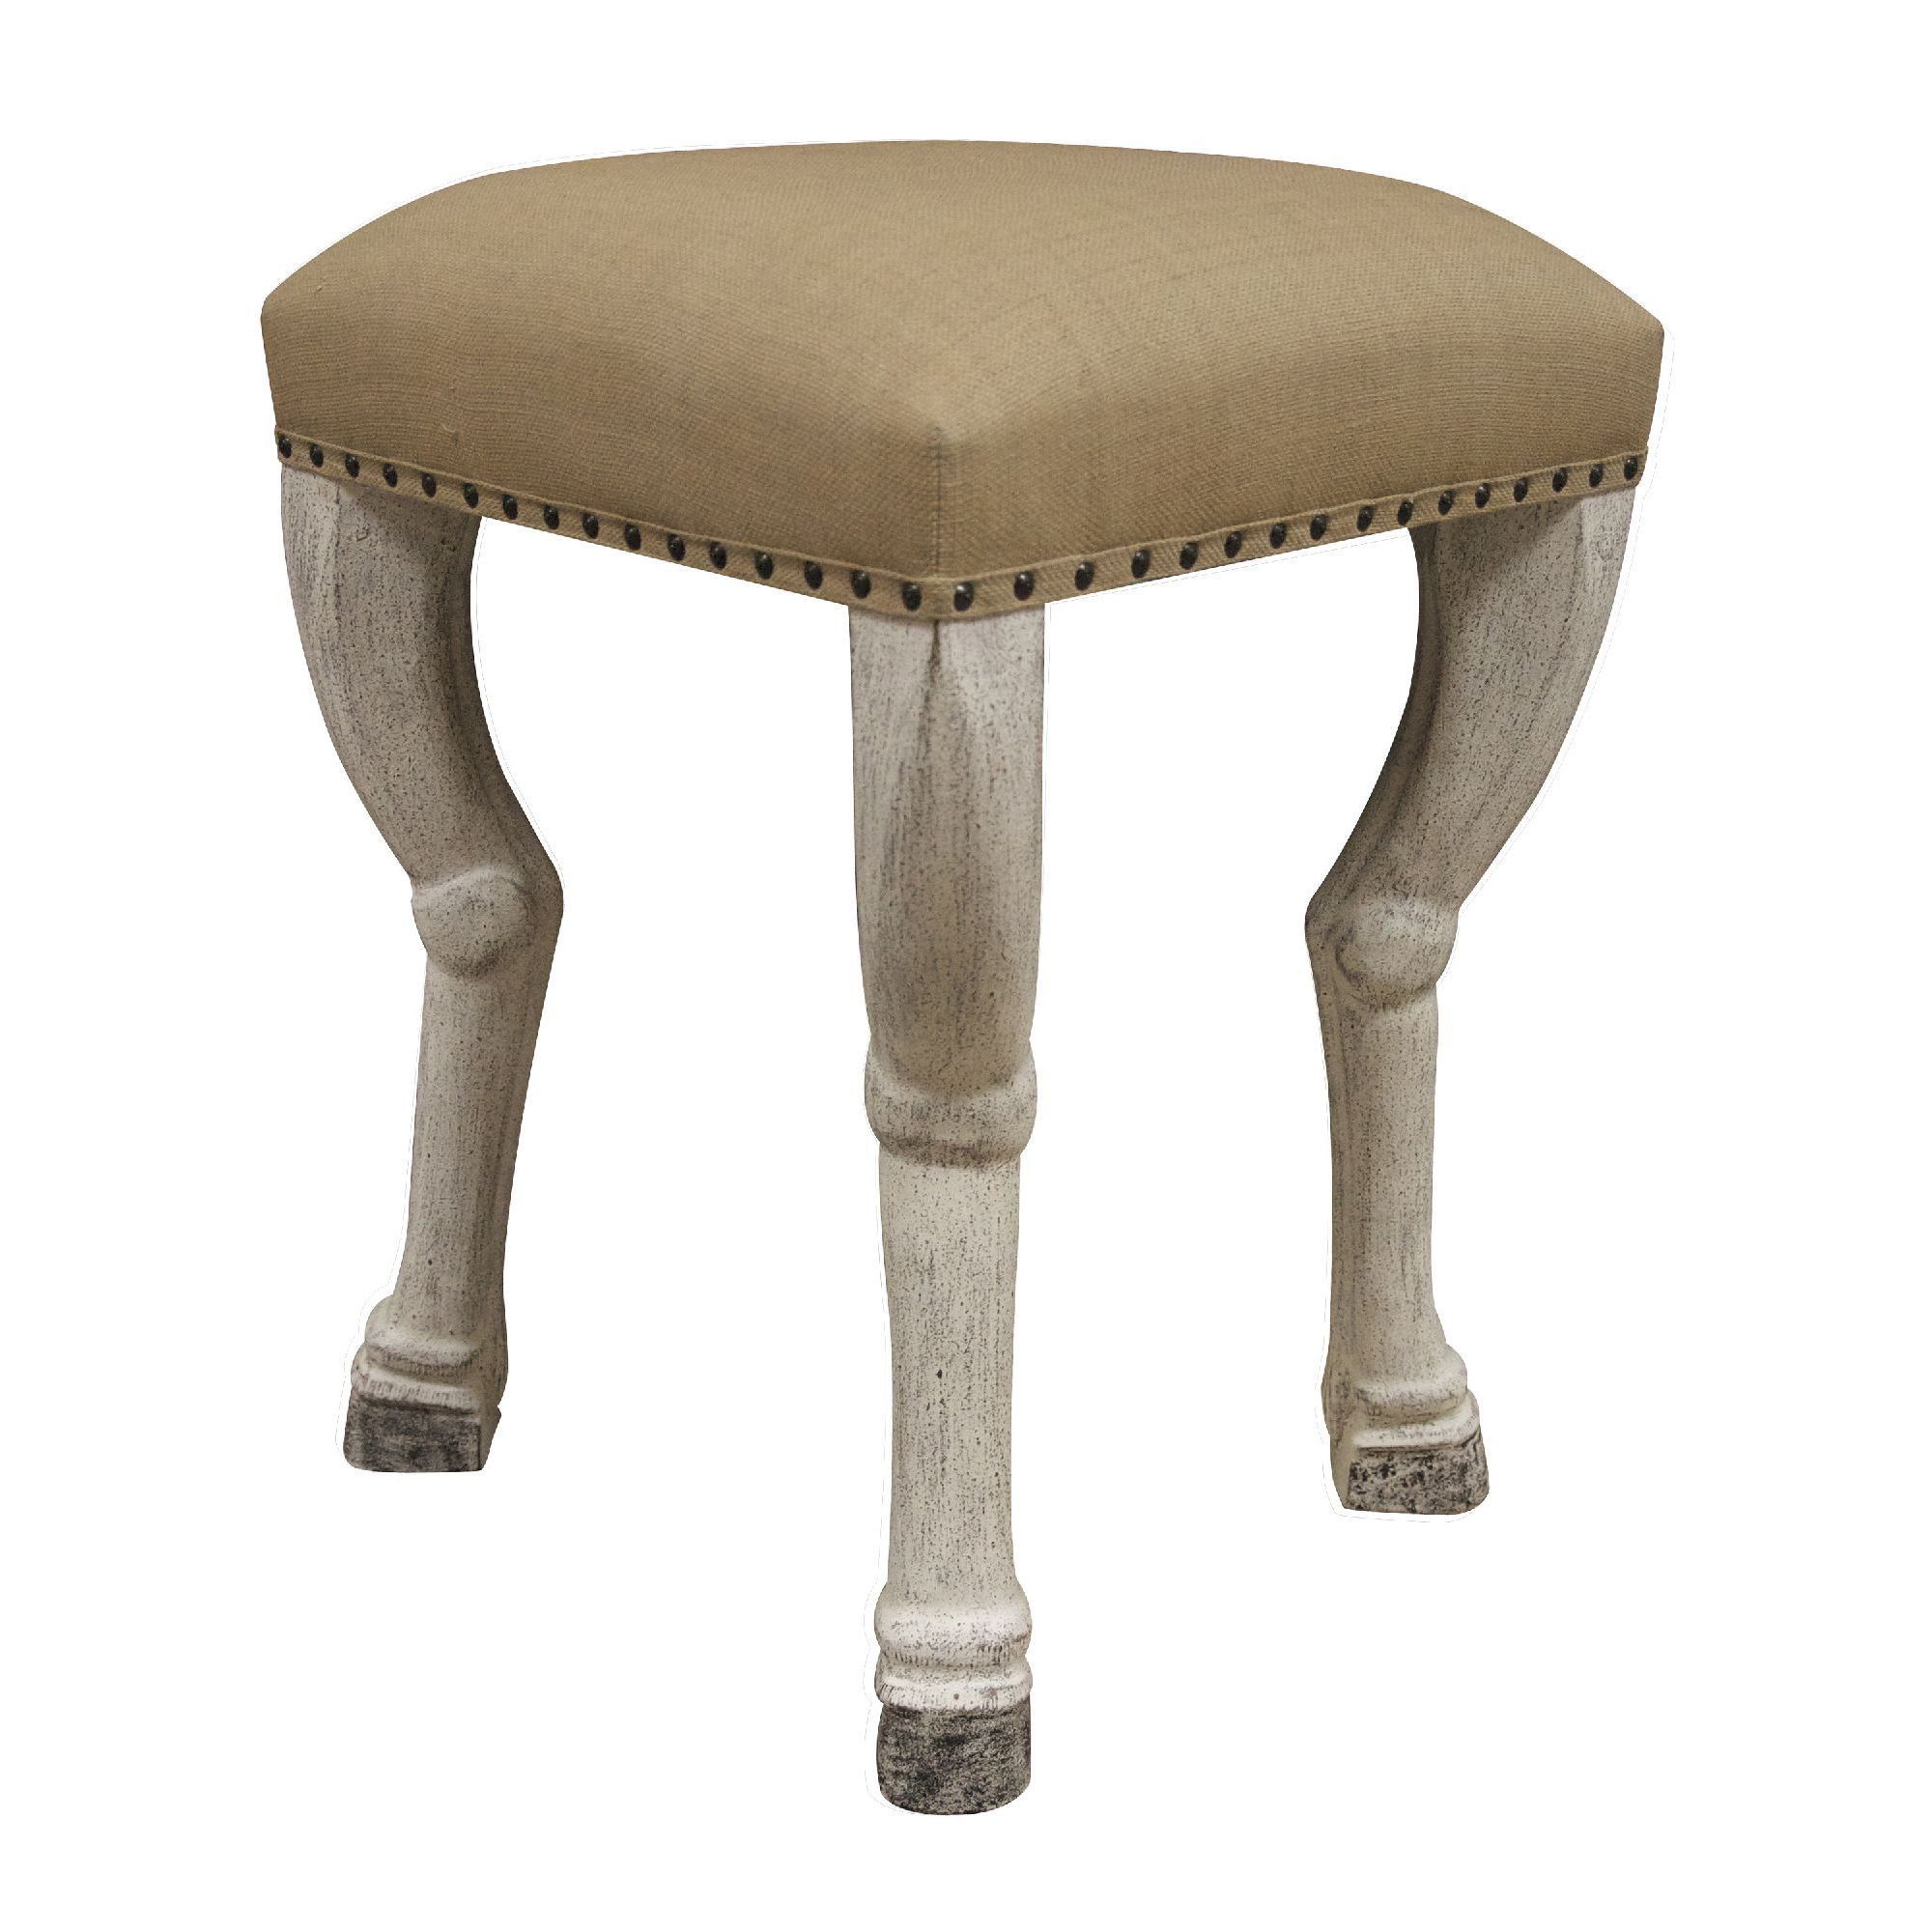 This counterstool brings out the animal in every room A classic